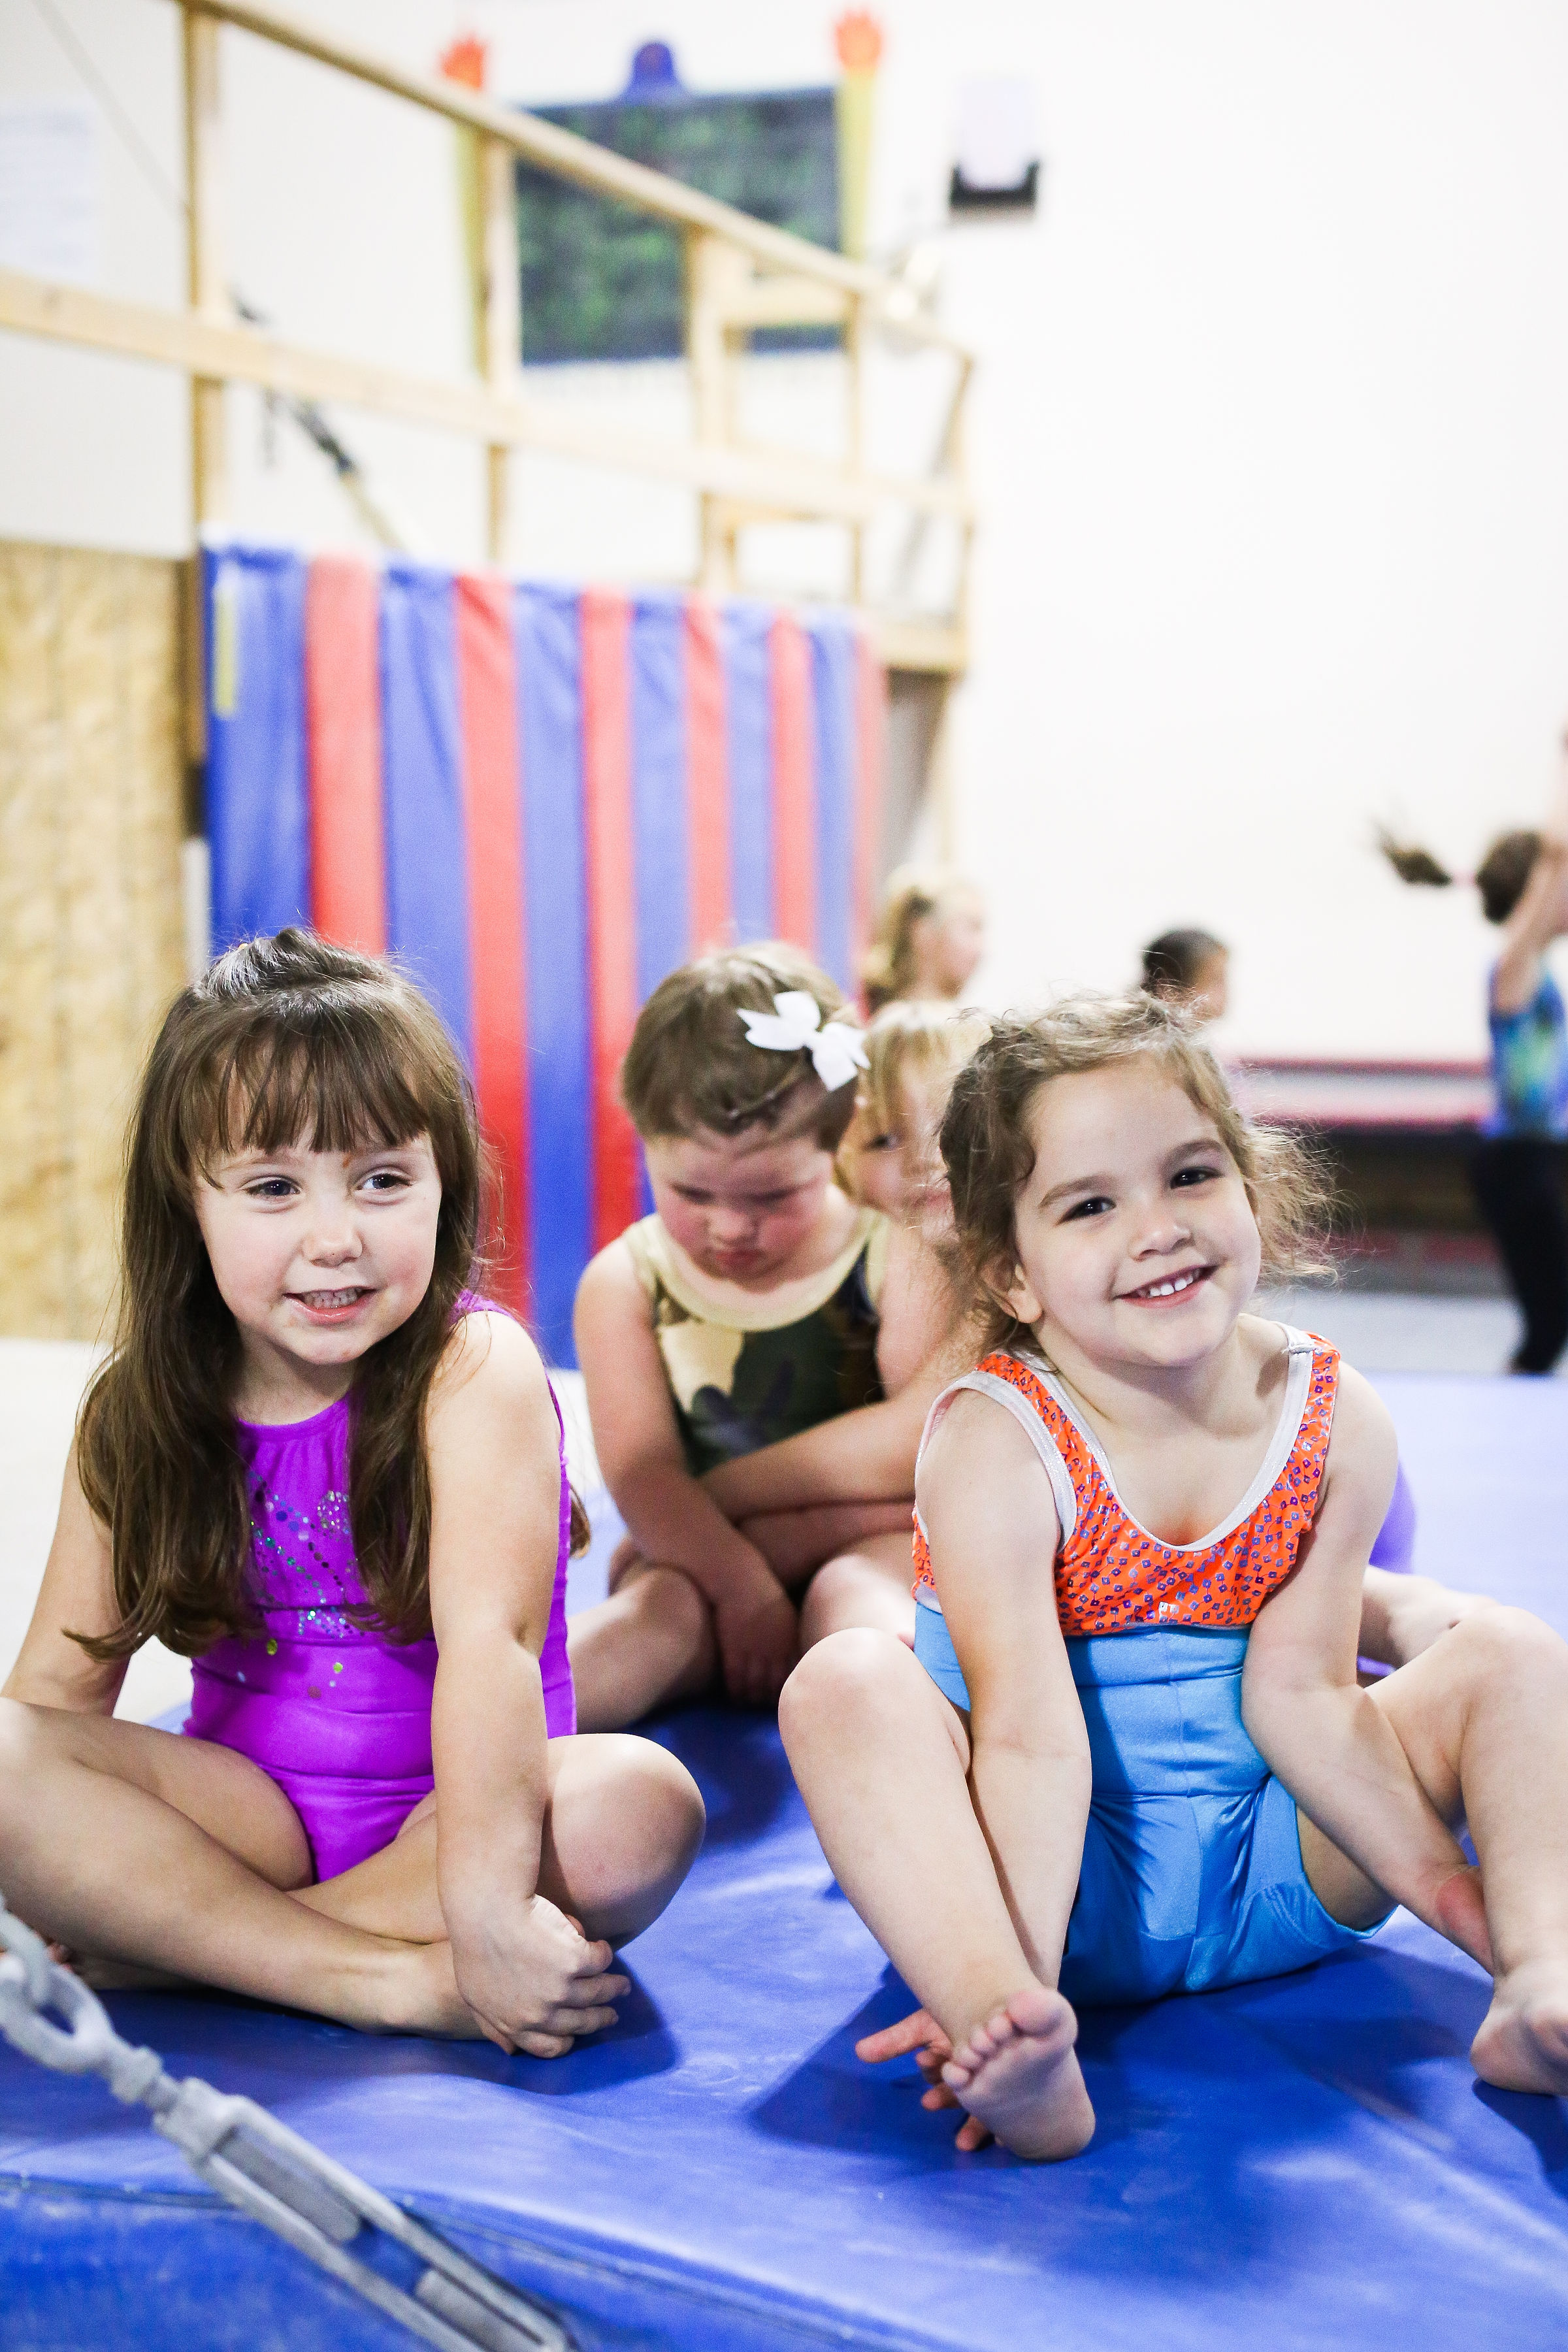 Classes for all ages - We have a wide range of classes and programs for everyone. Specializing in individual attention and smaller ratios, we pride ourselves on excellent training and fun for all ages.Learn more ➝